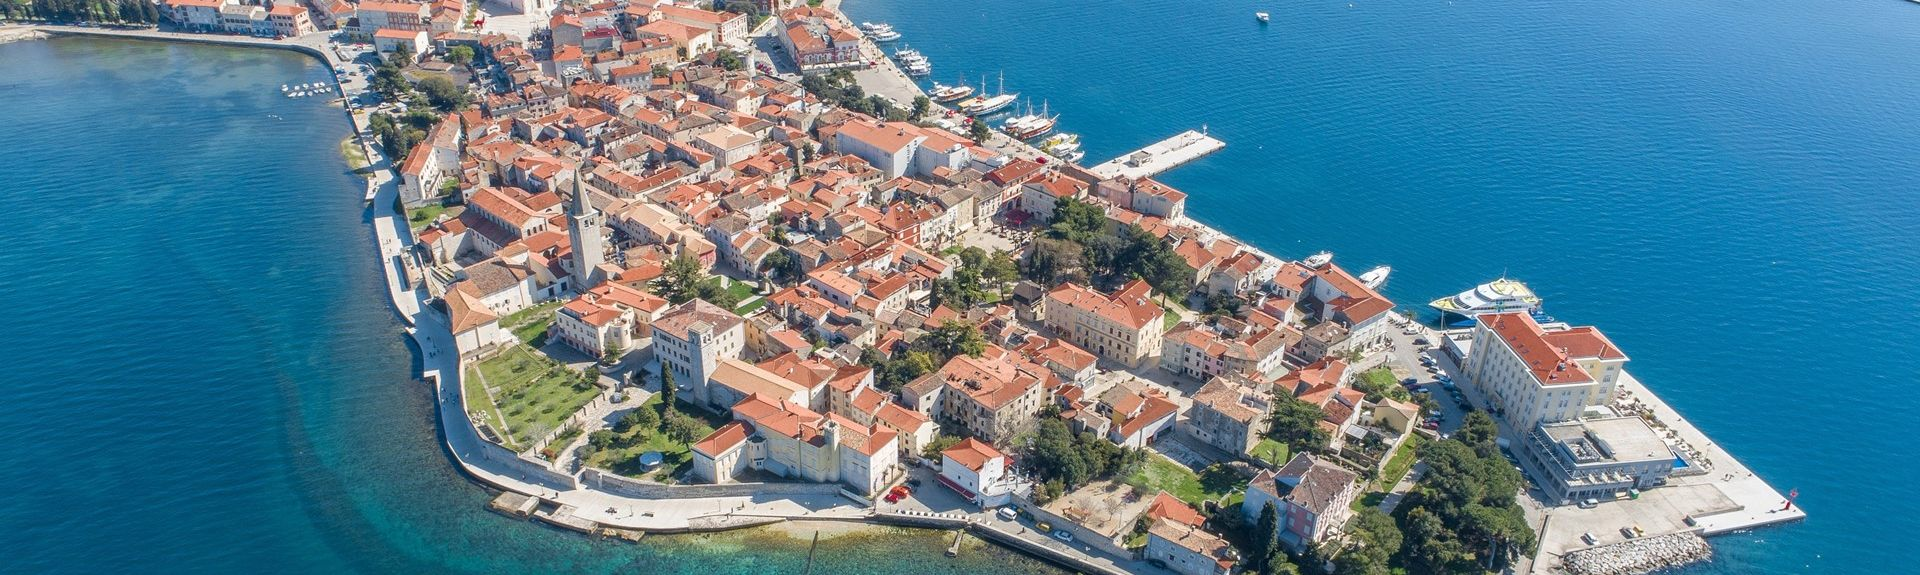 City Center, Porec, Istria (county), Croatia